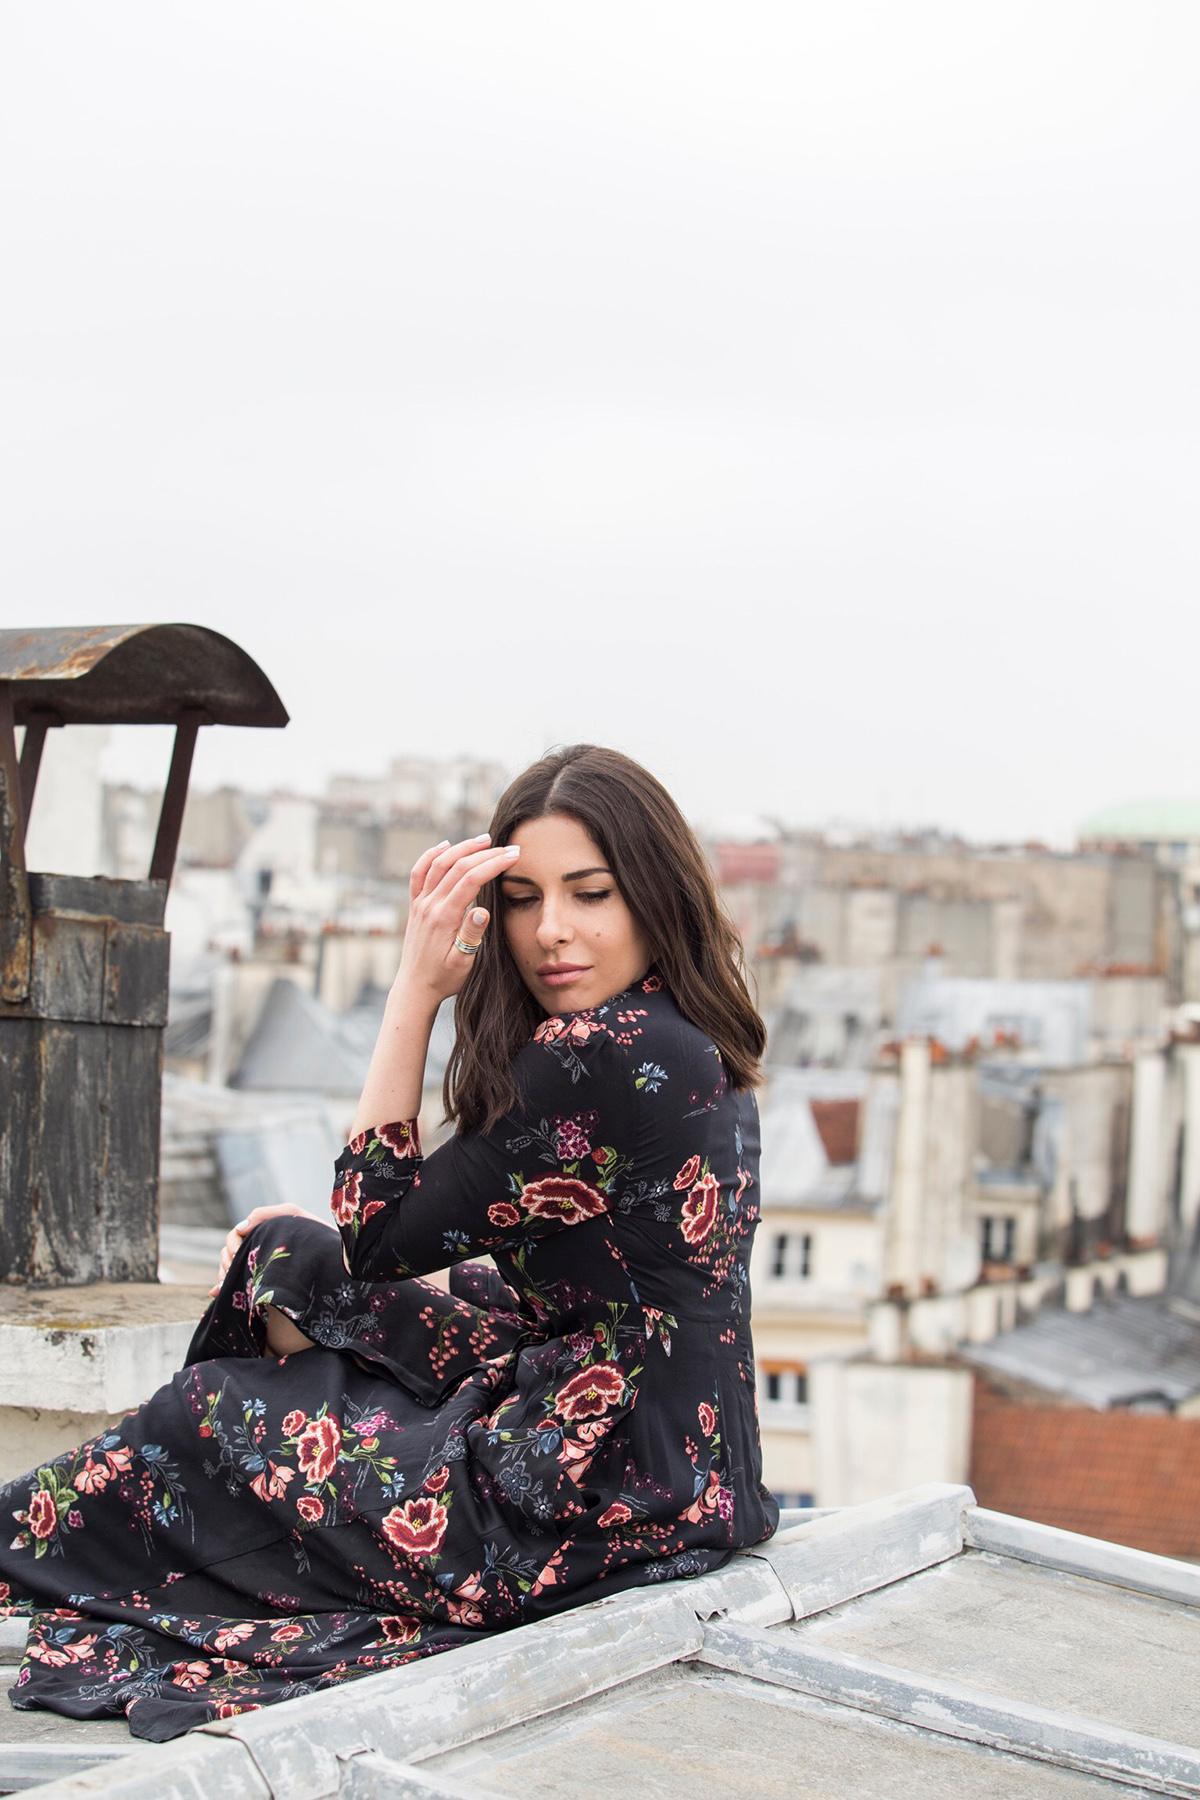 Ode To The Parisian Rooftops by Stella Asteria